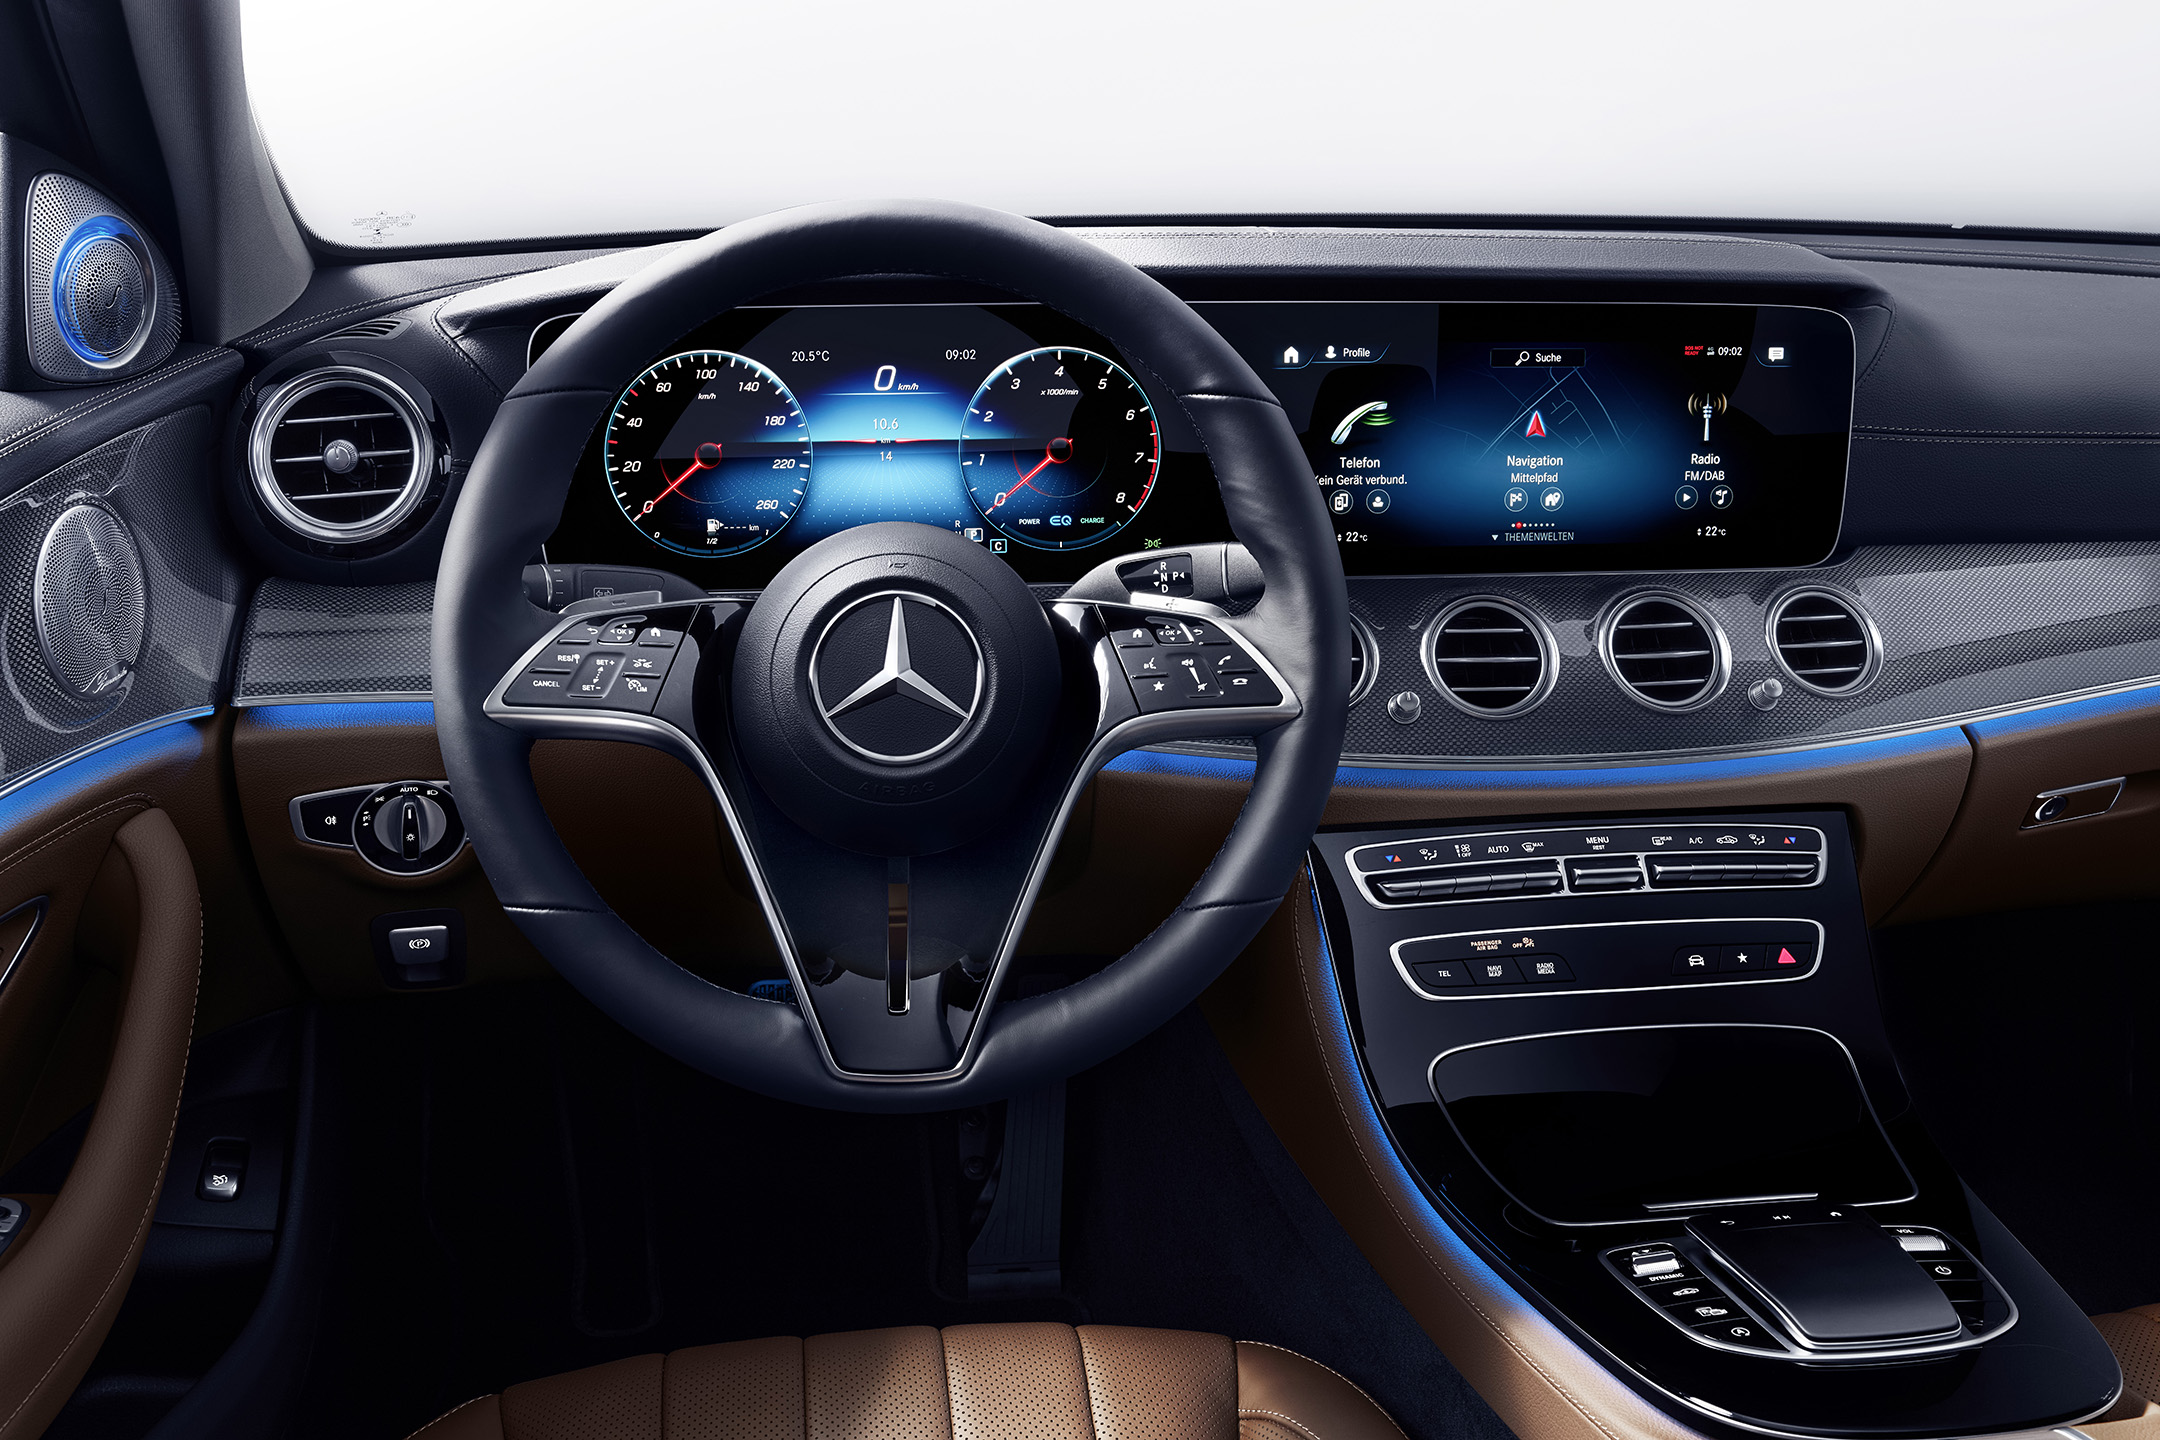 2021 Mercedes-Benz E-Class' Touch-Sensitive Steering Wheel Could be a Touchy Subject